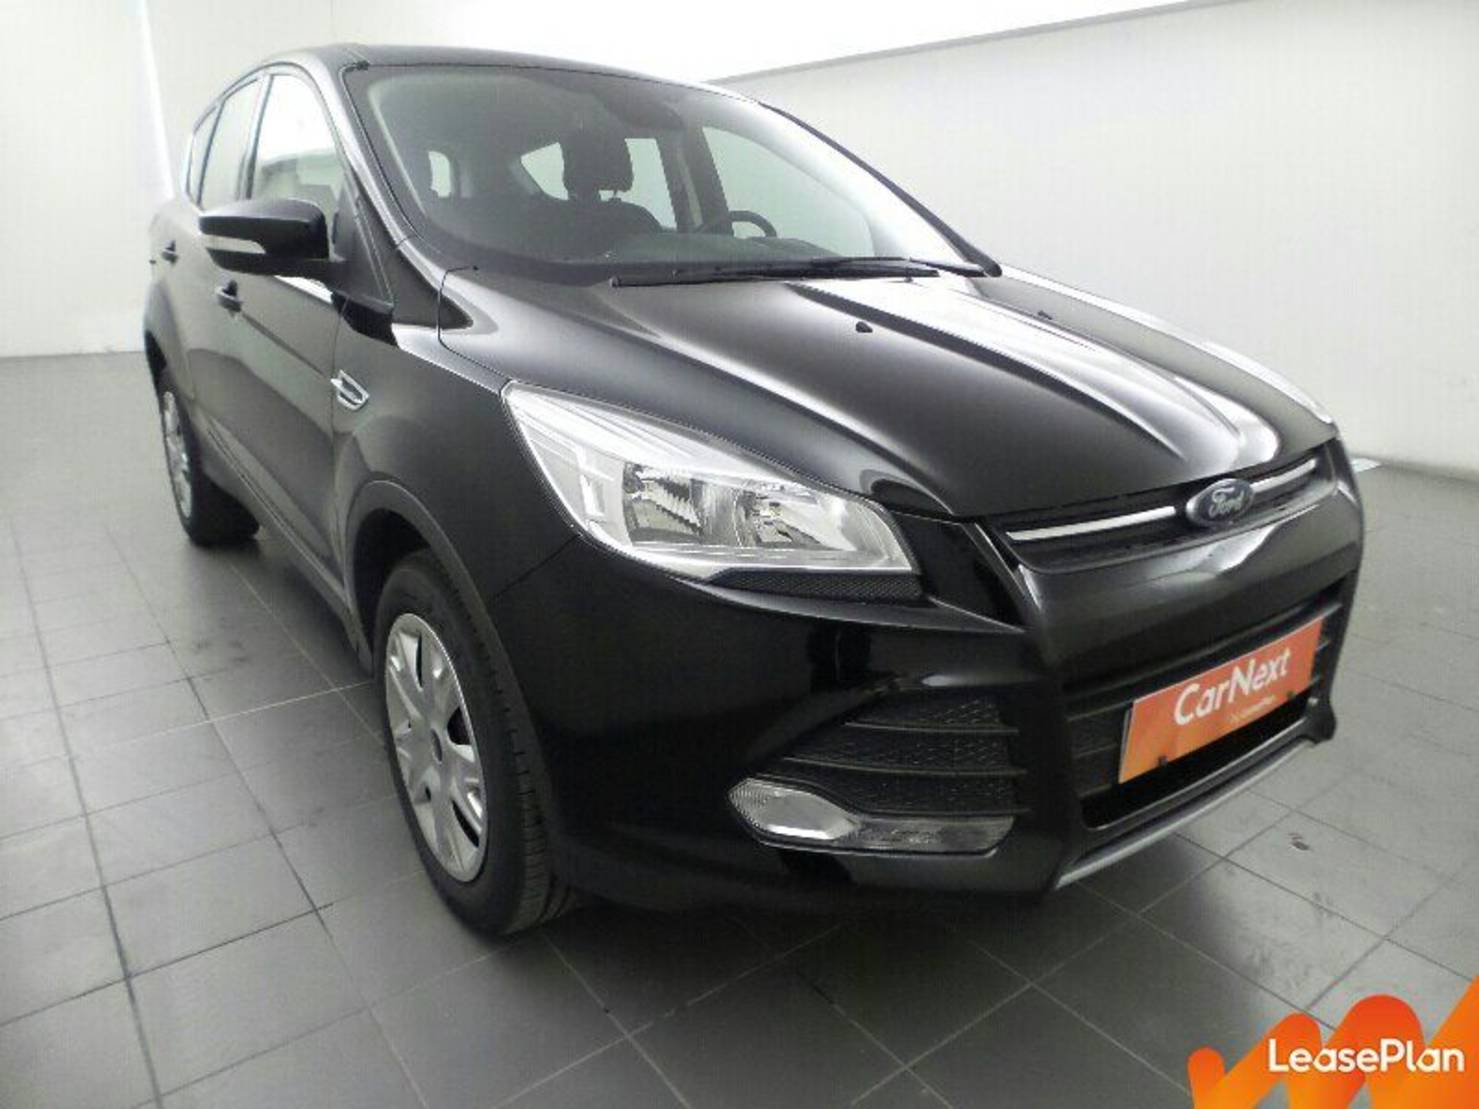 Ford Kuga 2.0 TDCi 120 S&S 4x2, Business Nav detail2